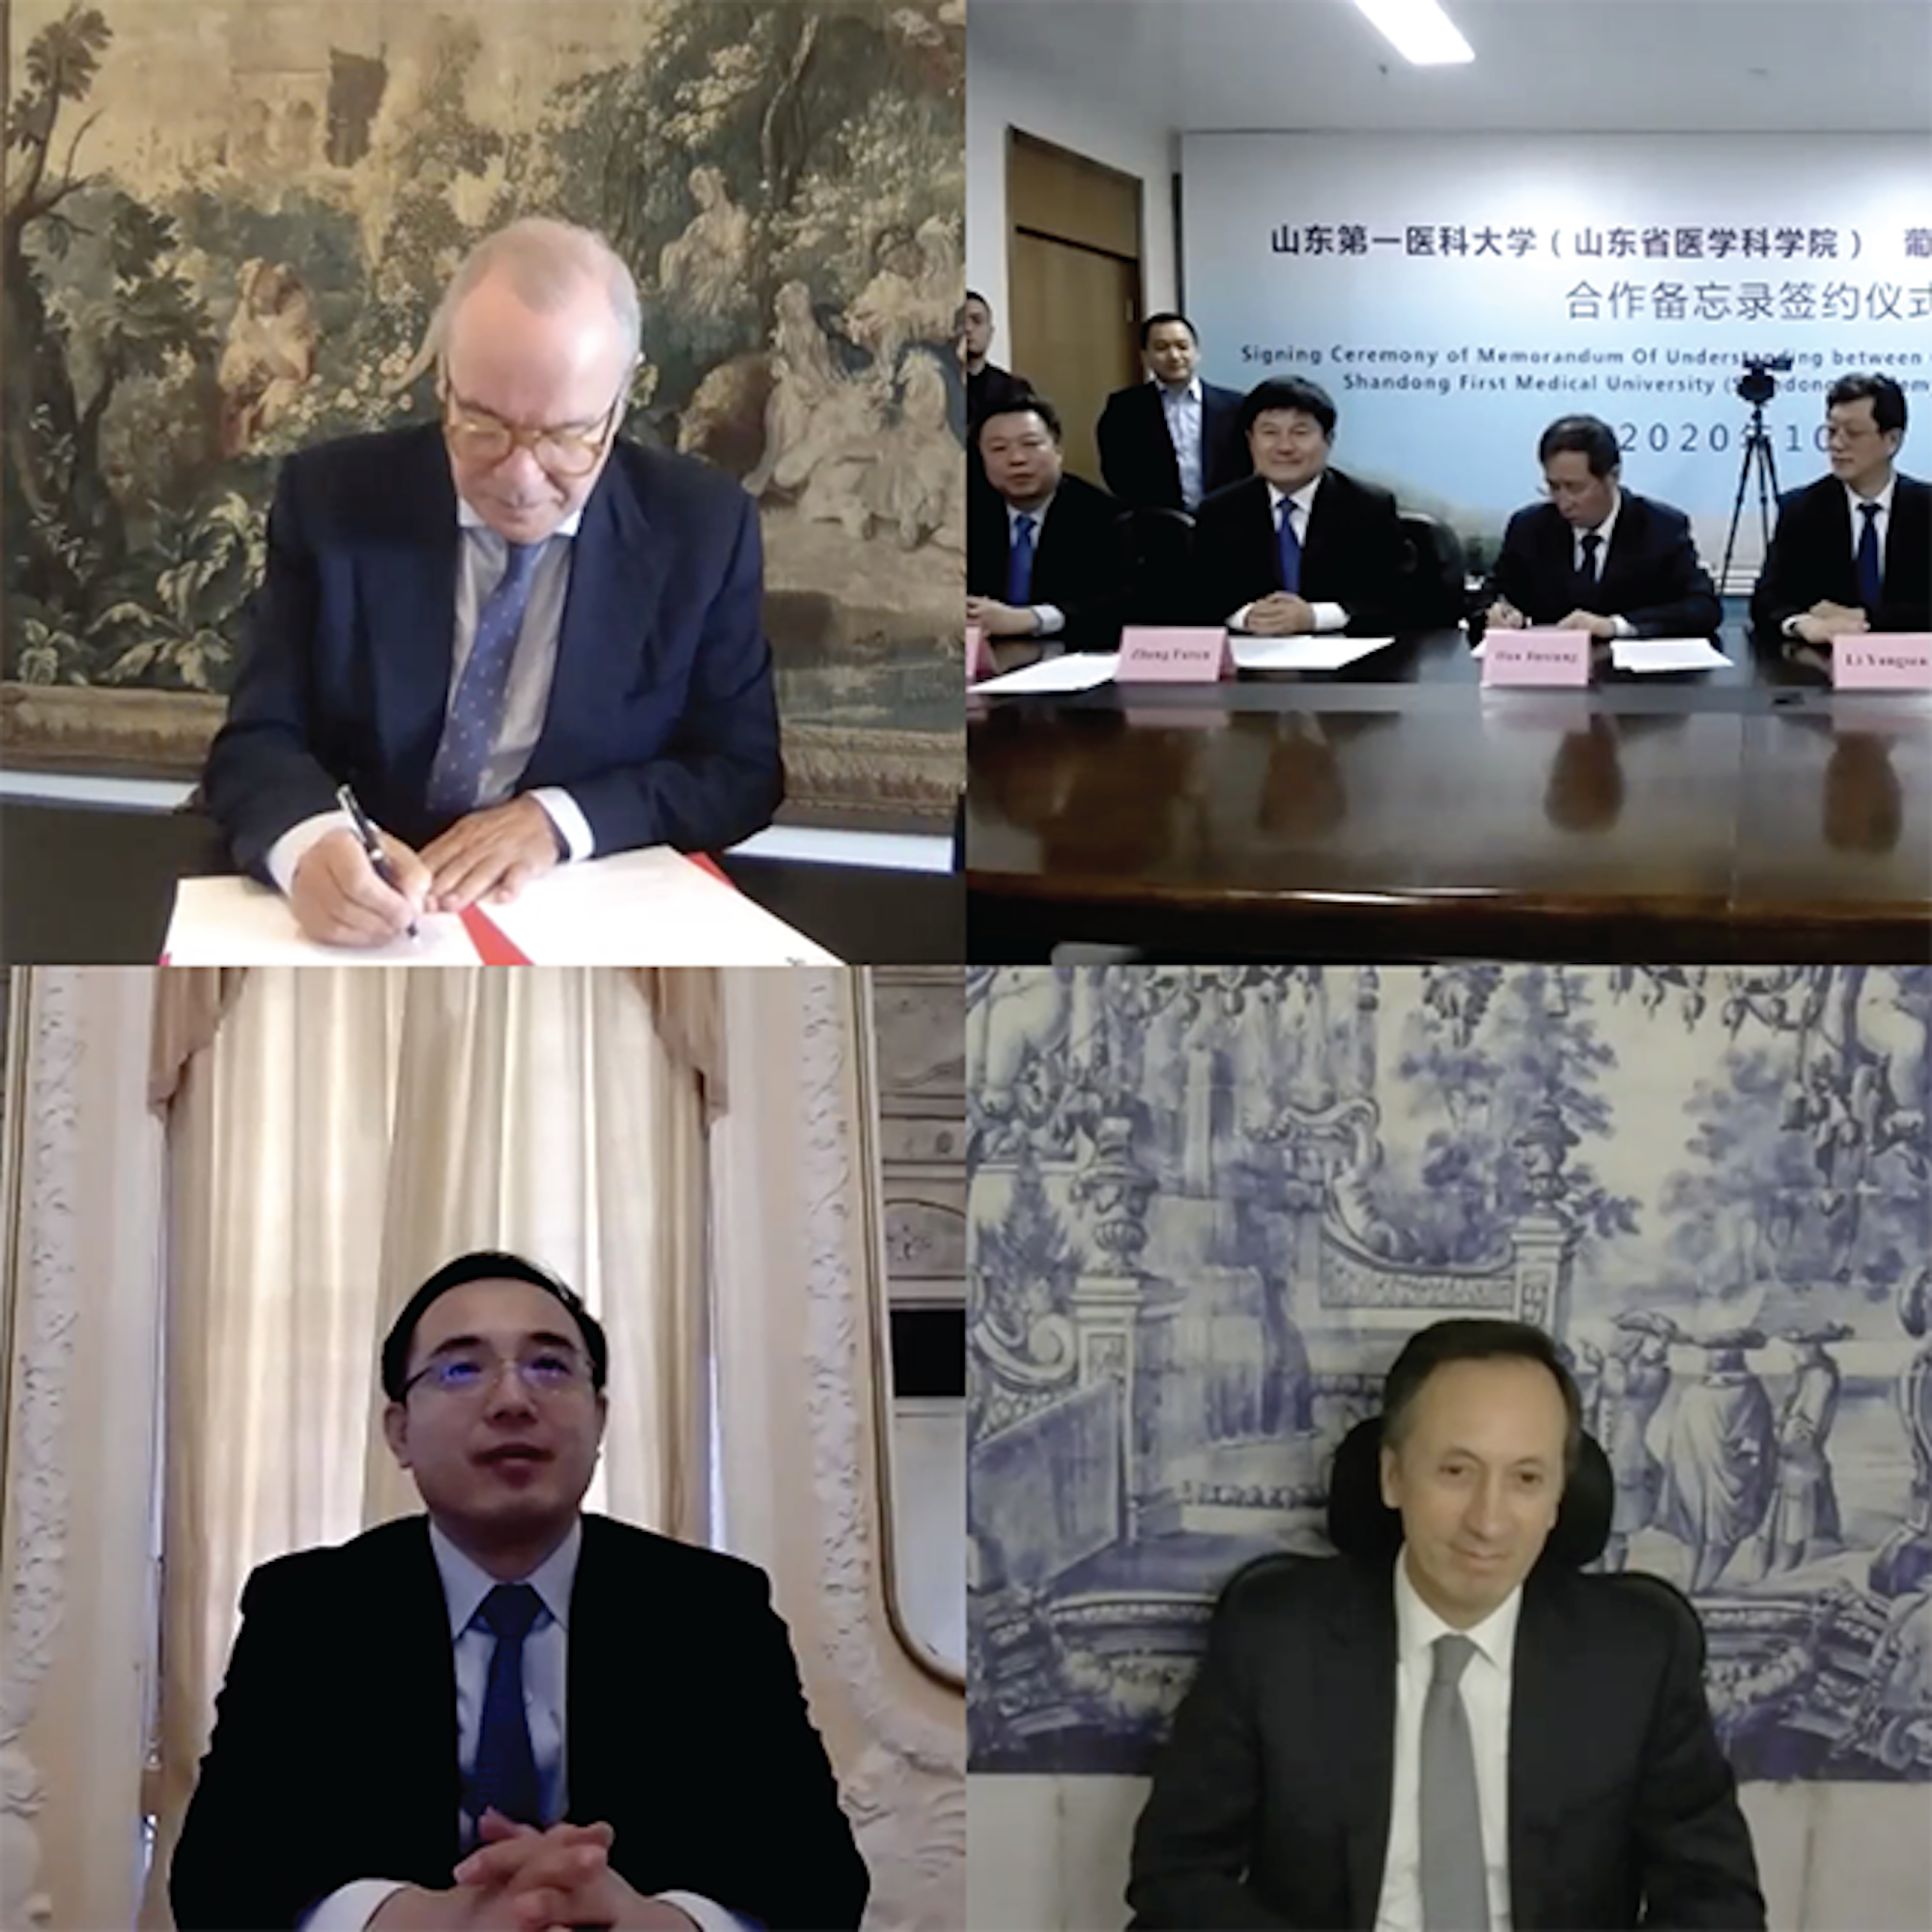 Video call signing of the partnership agreement between the Champalimaud foundation in Lisbon and China's Shandong First Medical university